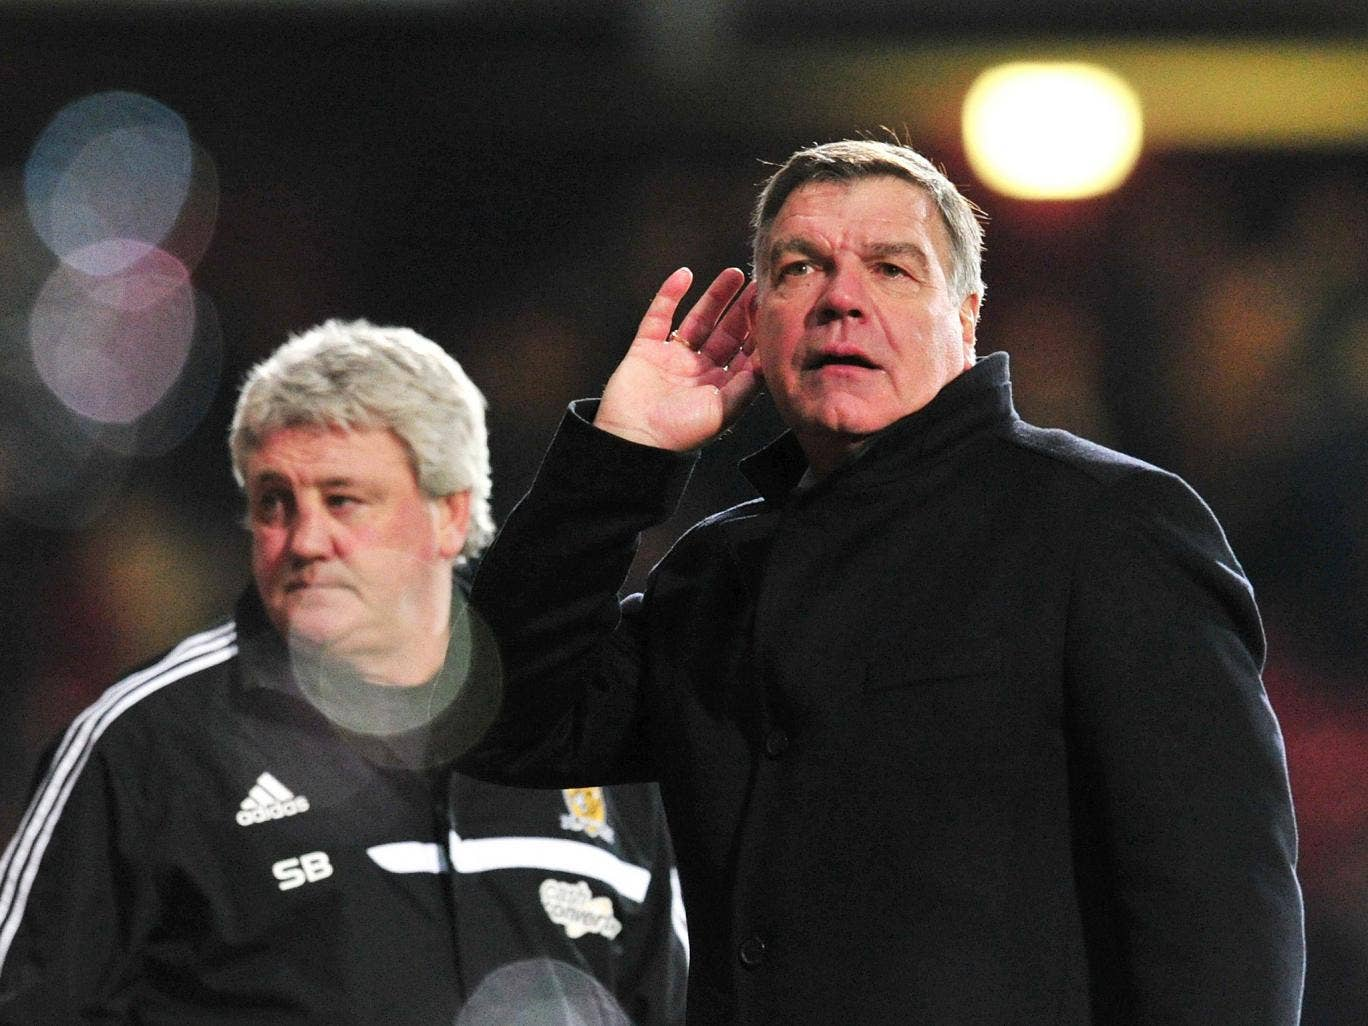 Sam Allardyce responds to West ham fans booing at the final whistle of their 2-1 victory over Hull